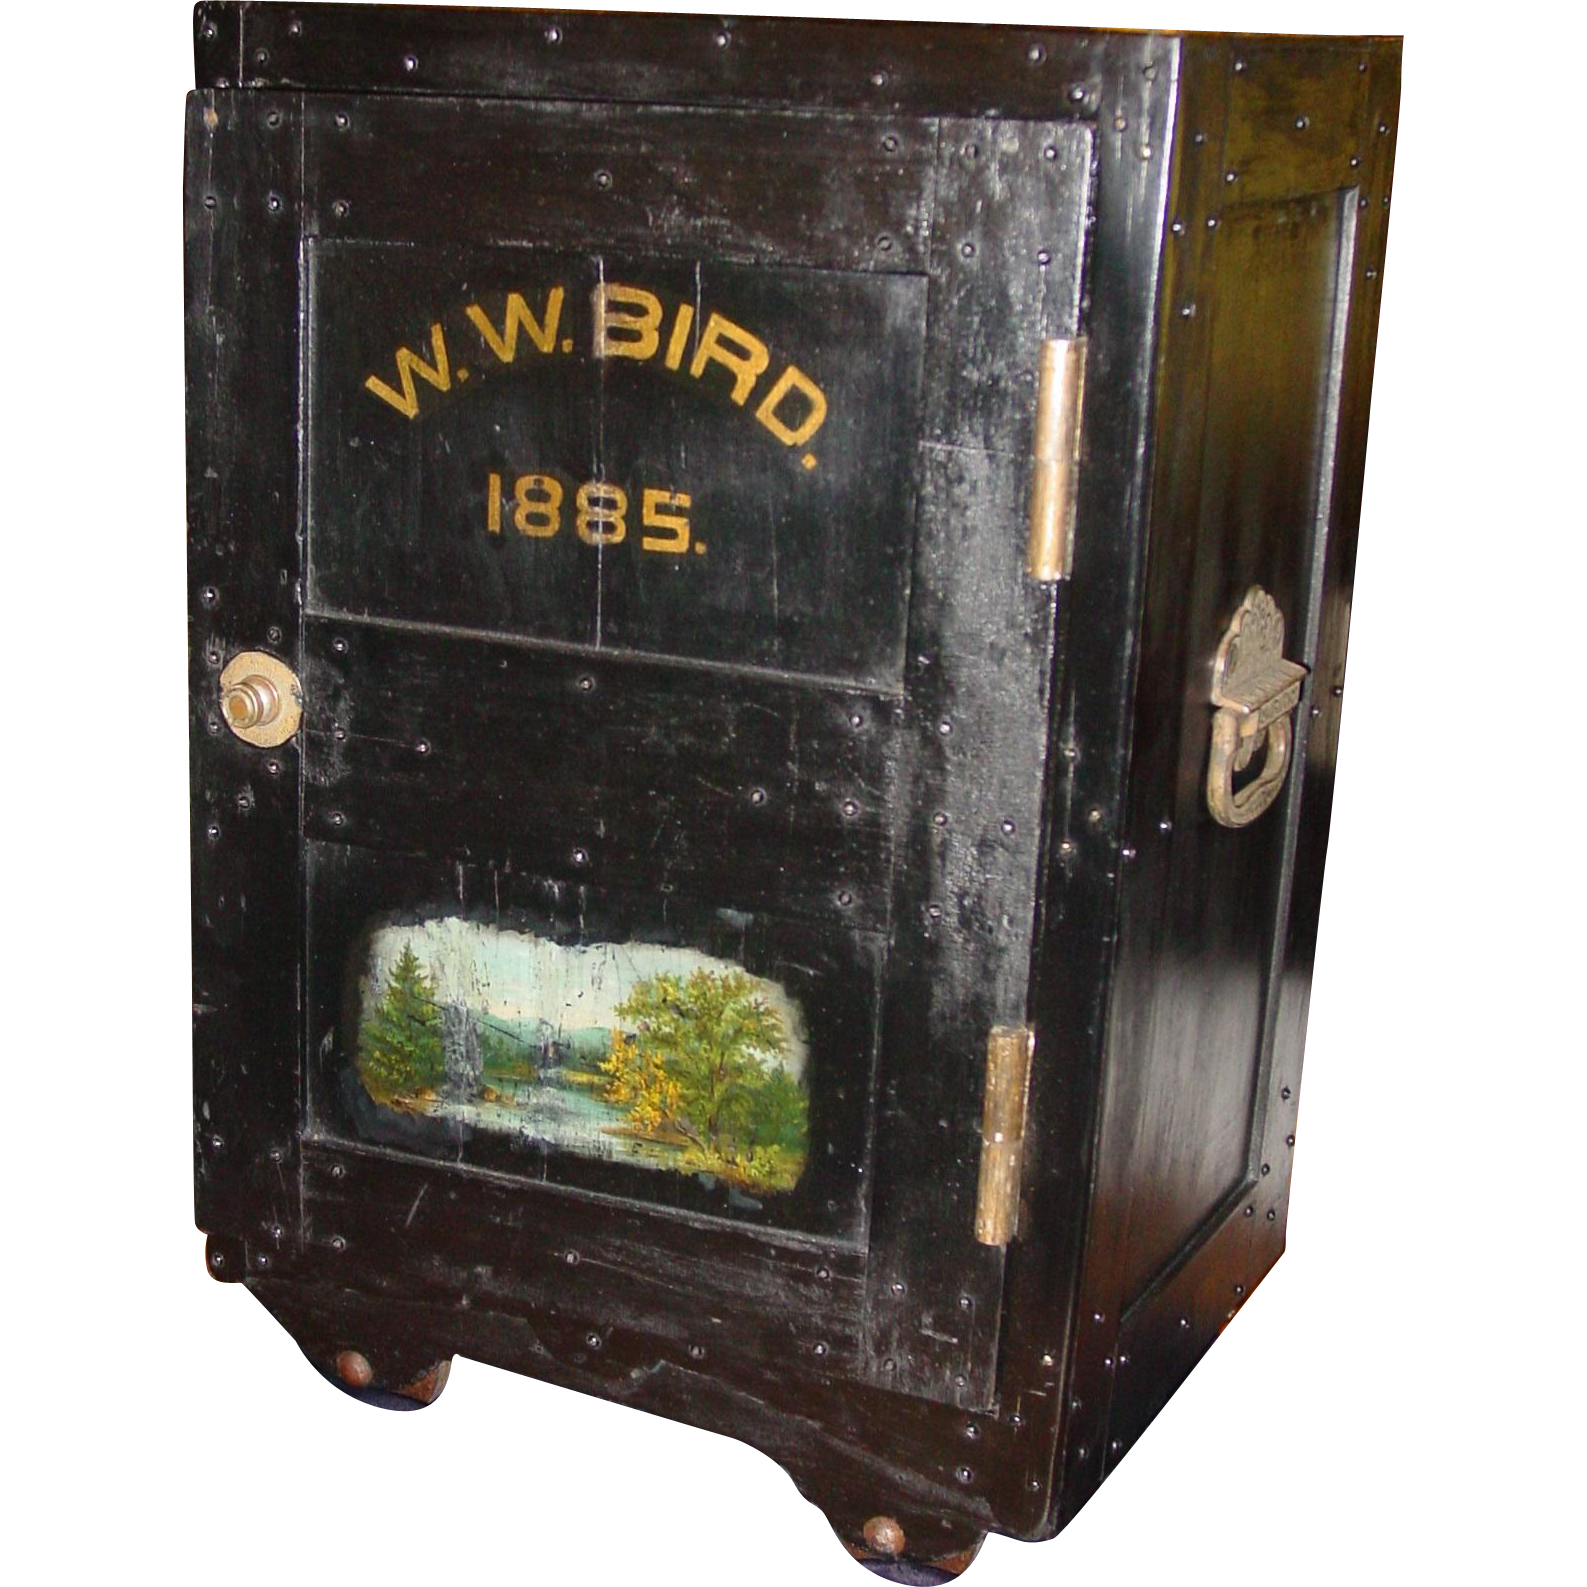 Unusual antique small personal safe W W Bird fitted interior